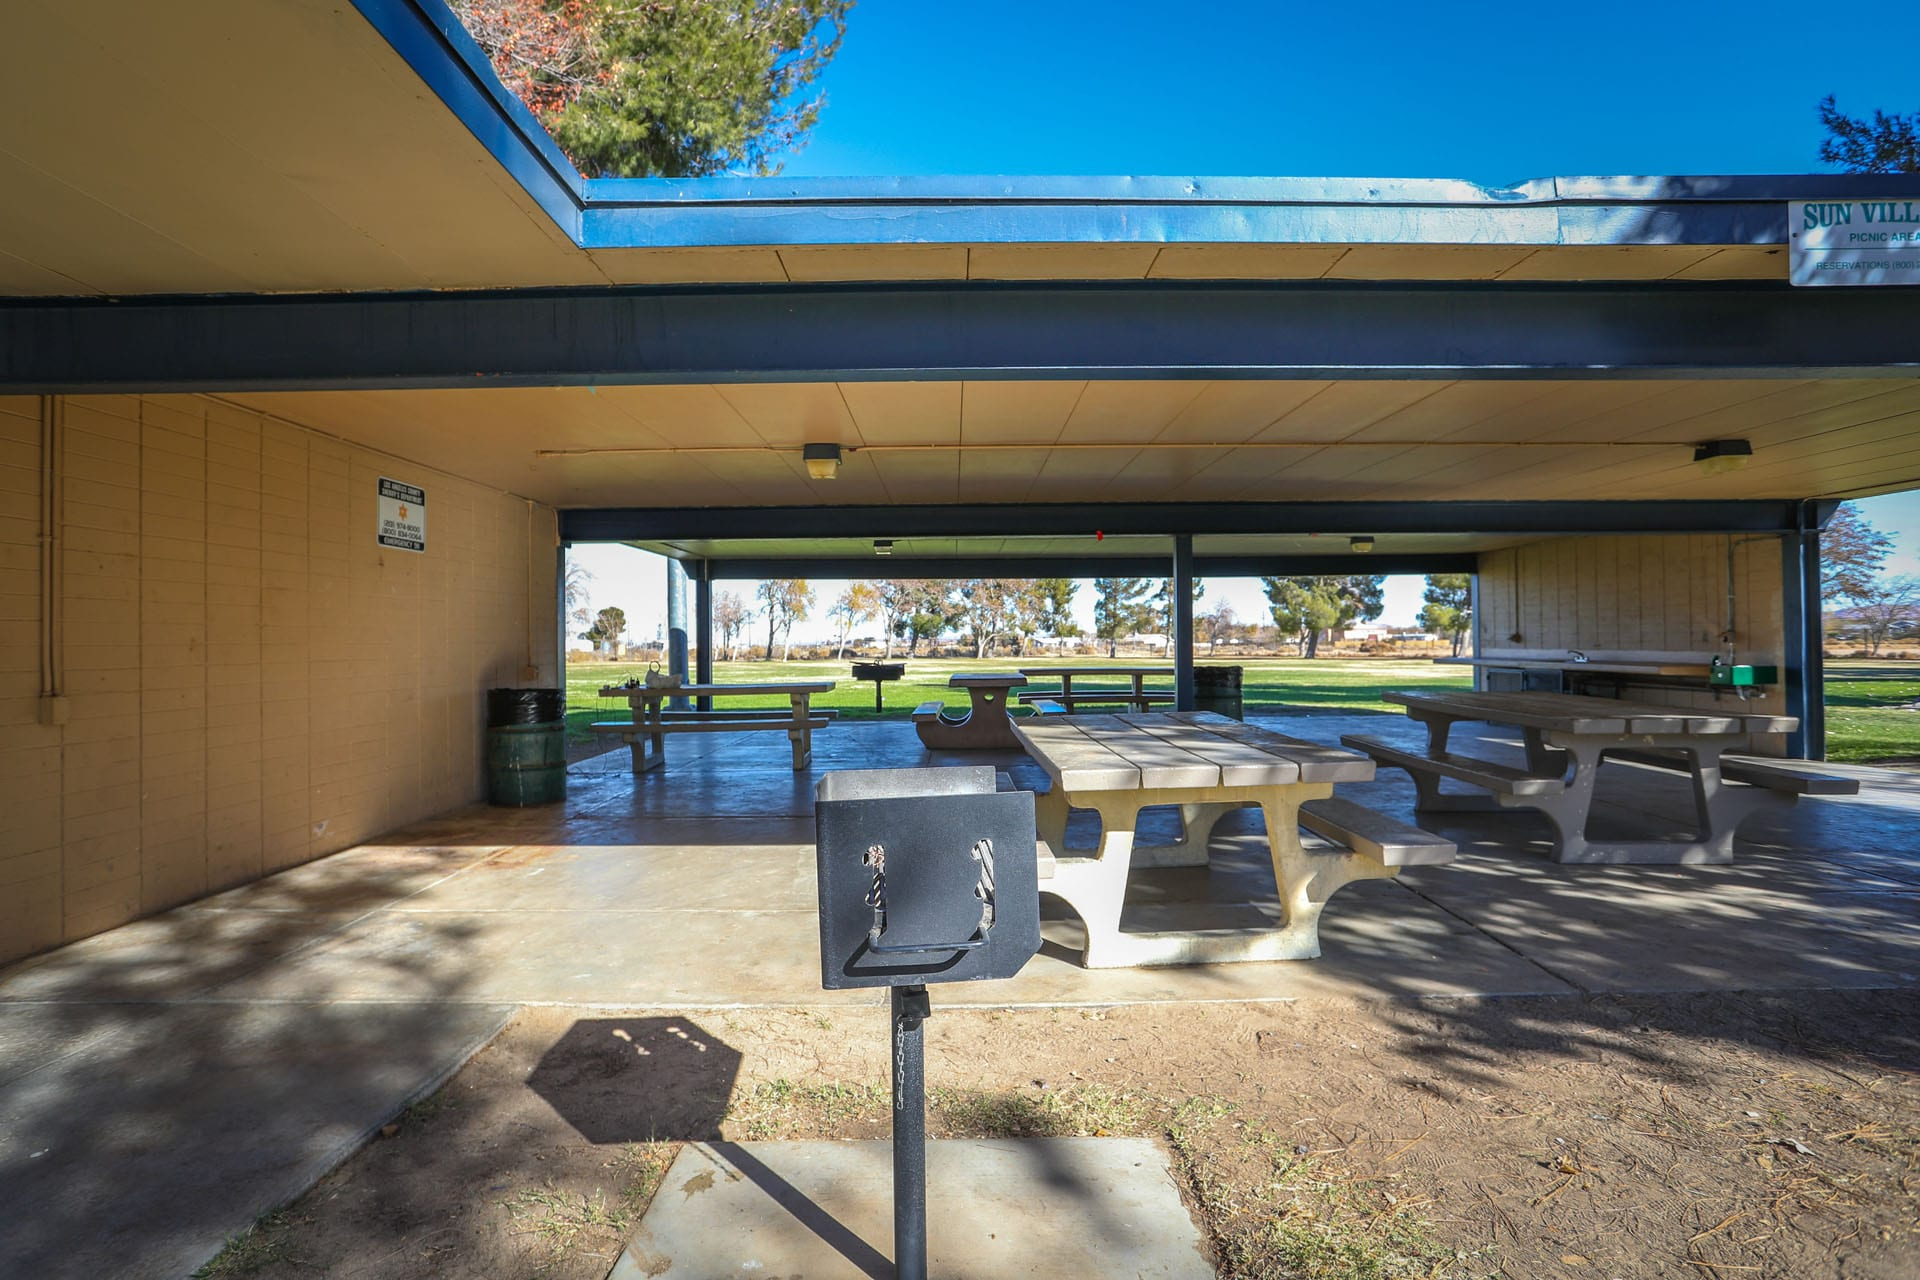 Picnic tables under and awning. BBQ grill in foreground